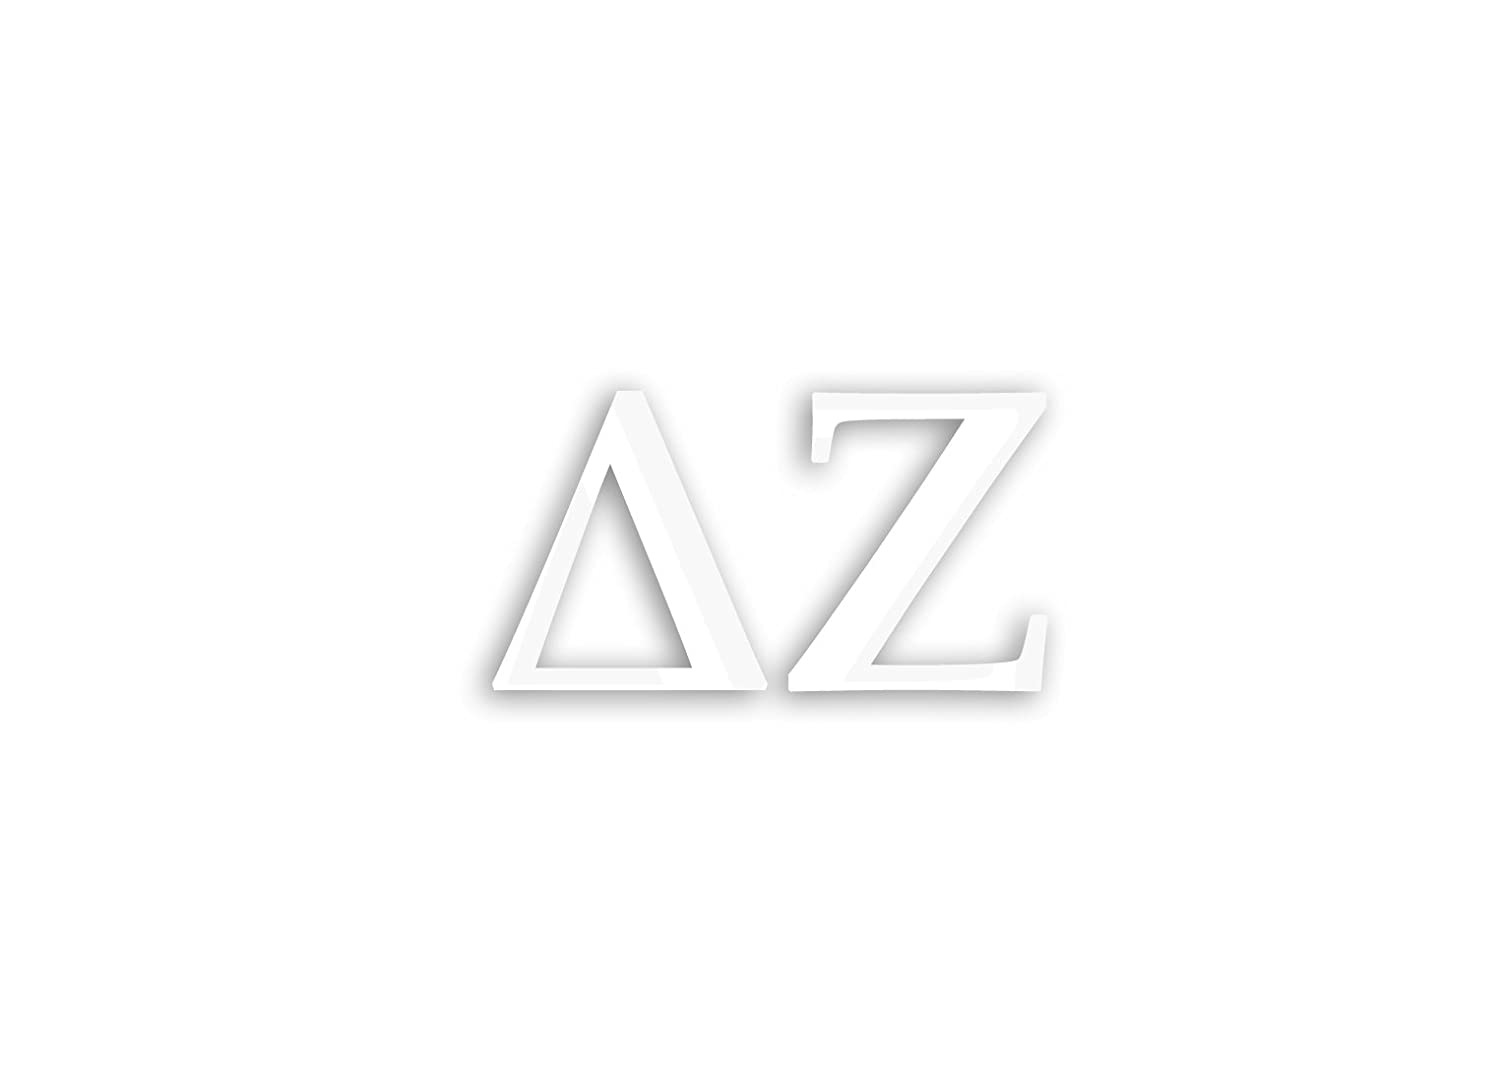 Officially Licensed Delta Zeta 6 x 3 Window Decal mal00209 White Mallory Holle Inc